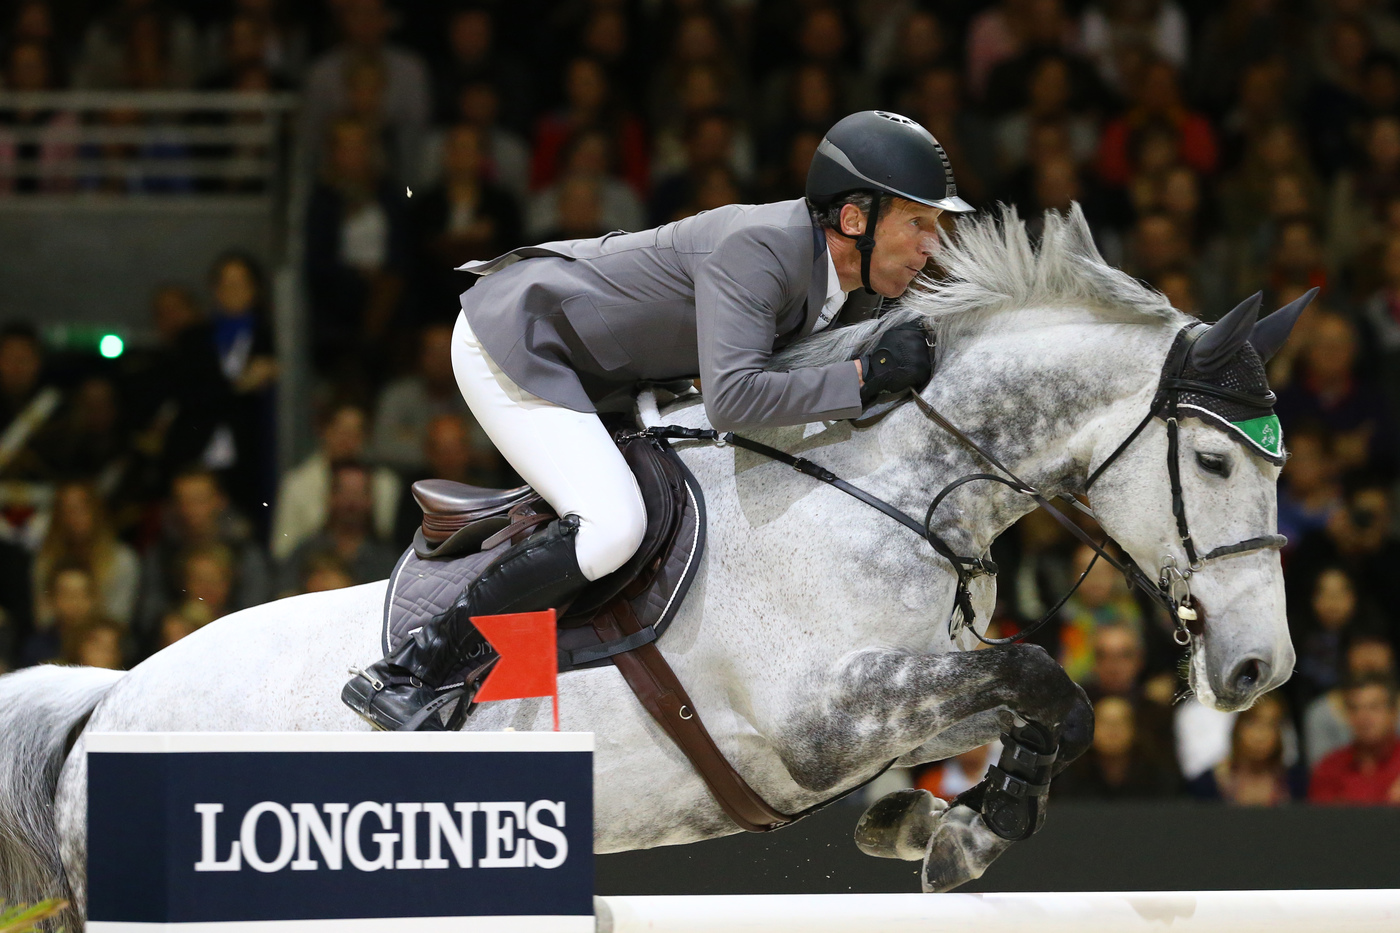 Longines Show Jumping Event: The Longines FEI World Cup™ Jumping Final: a perfect end to the series 4